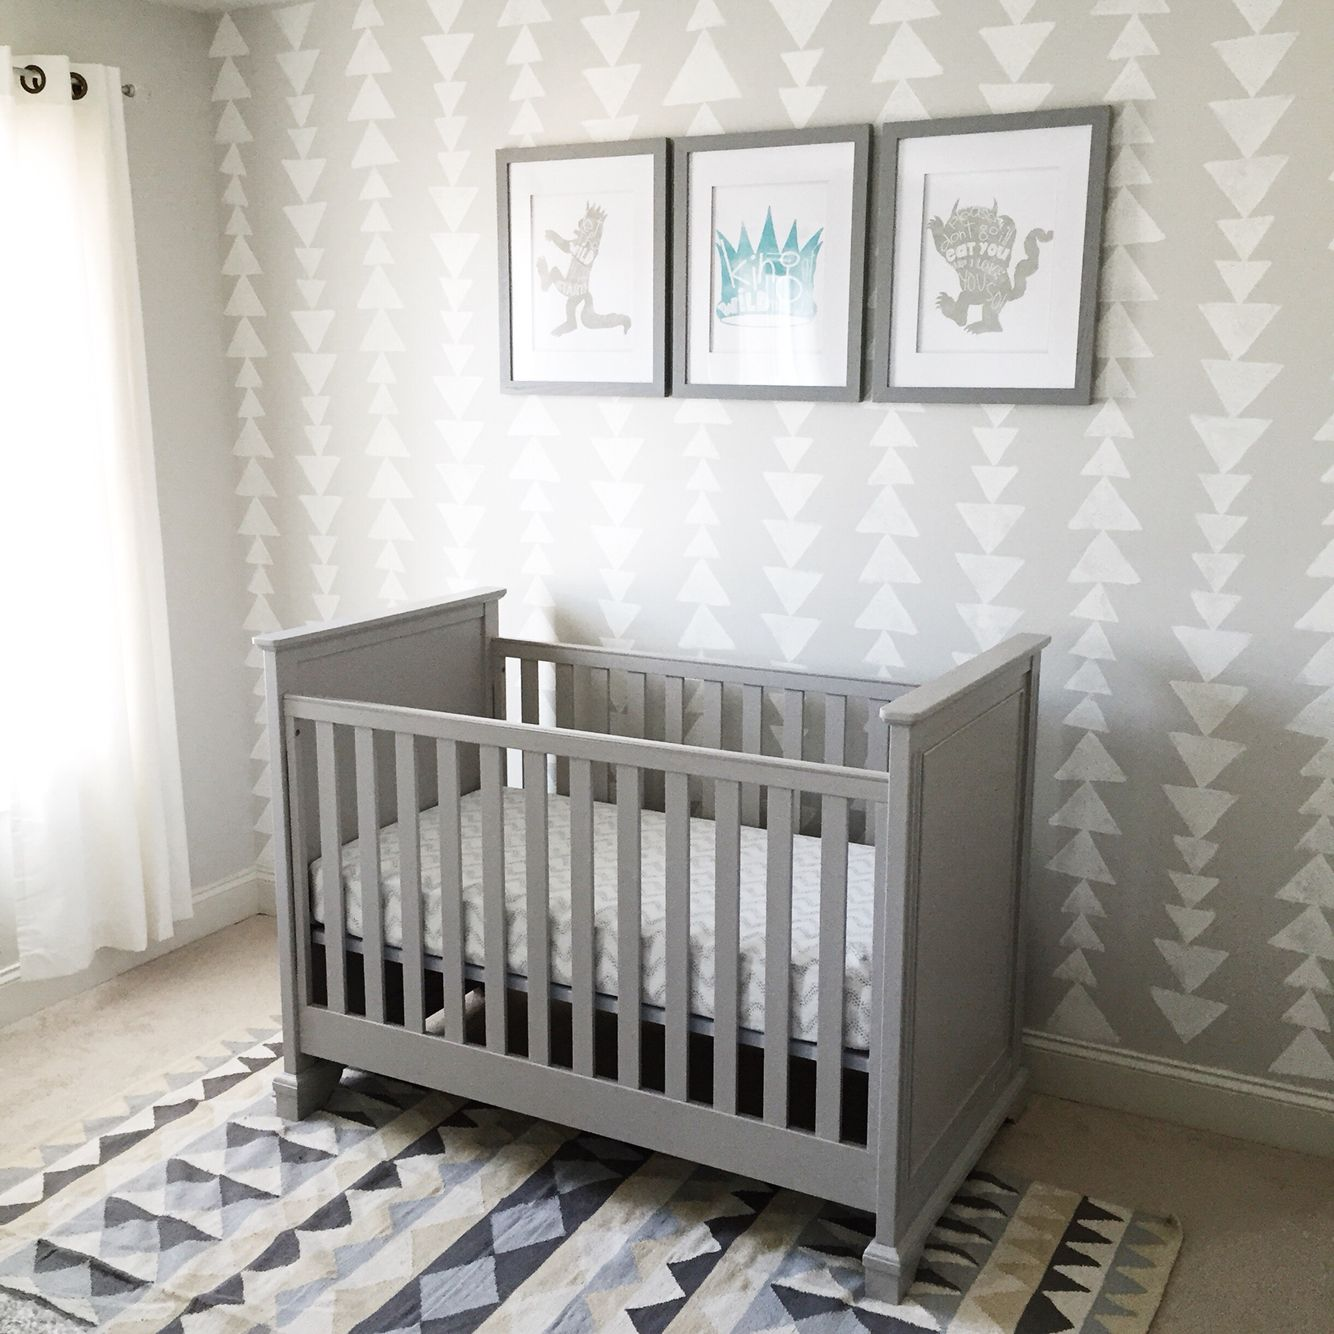 Max's grey nursery with sponge triangle stamped wall